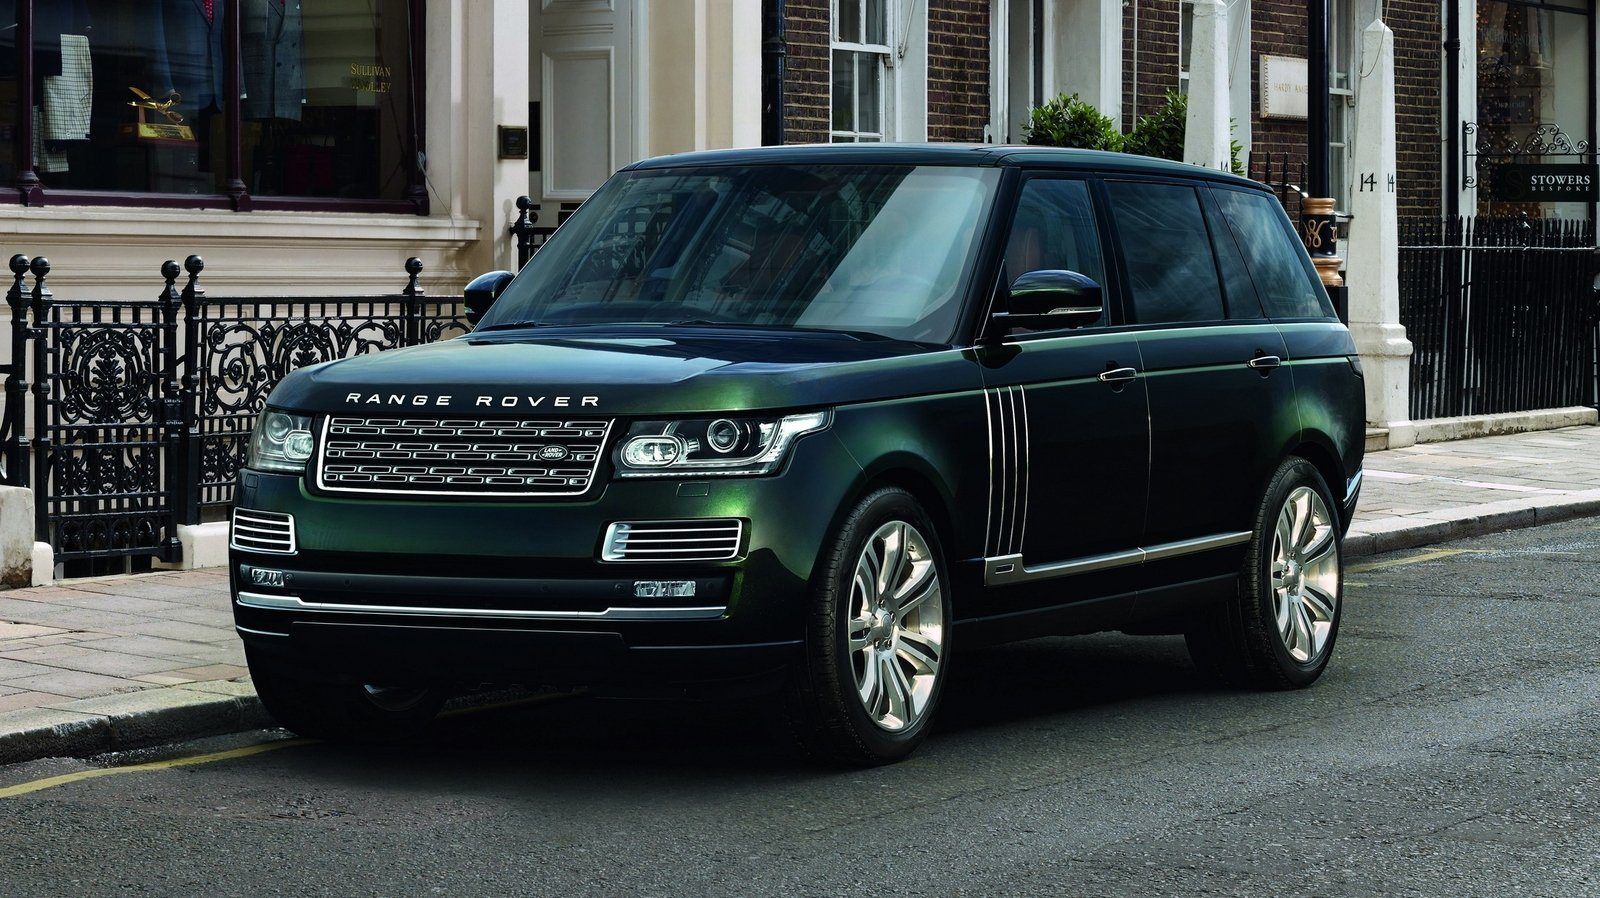 2015 Land Rover Range Rover SVO Holland & Holland Special